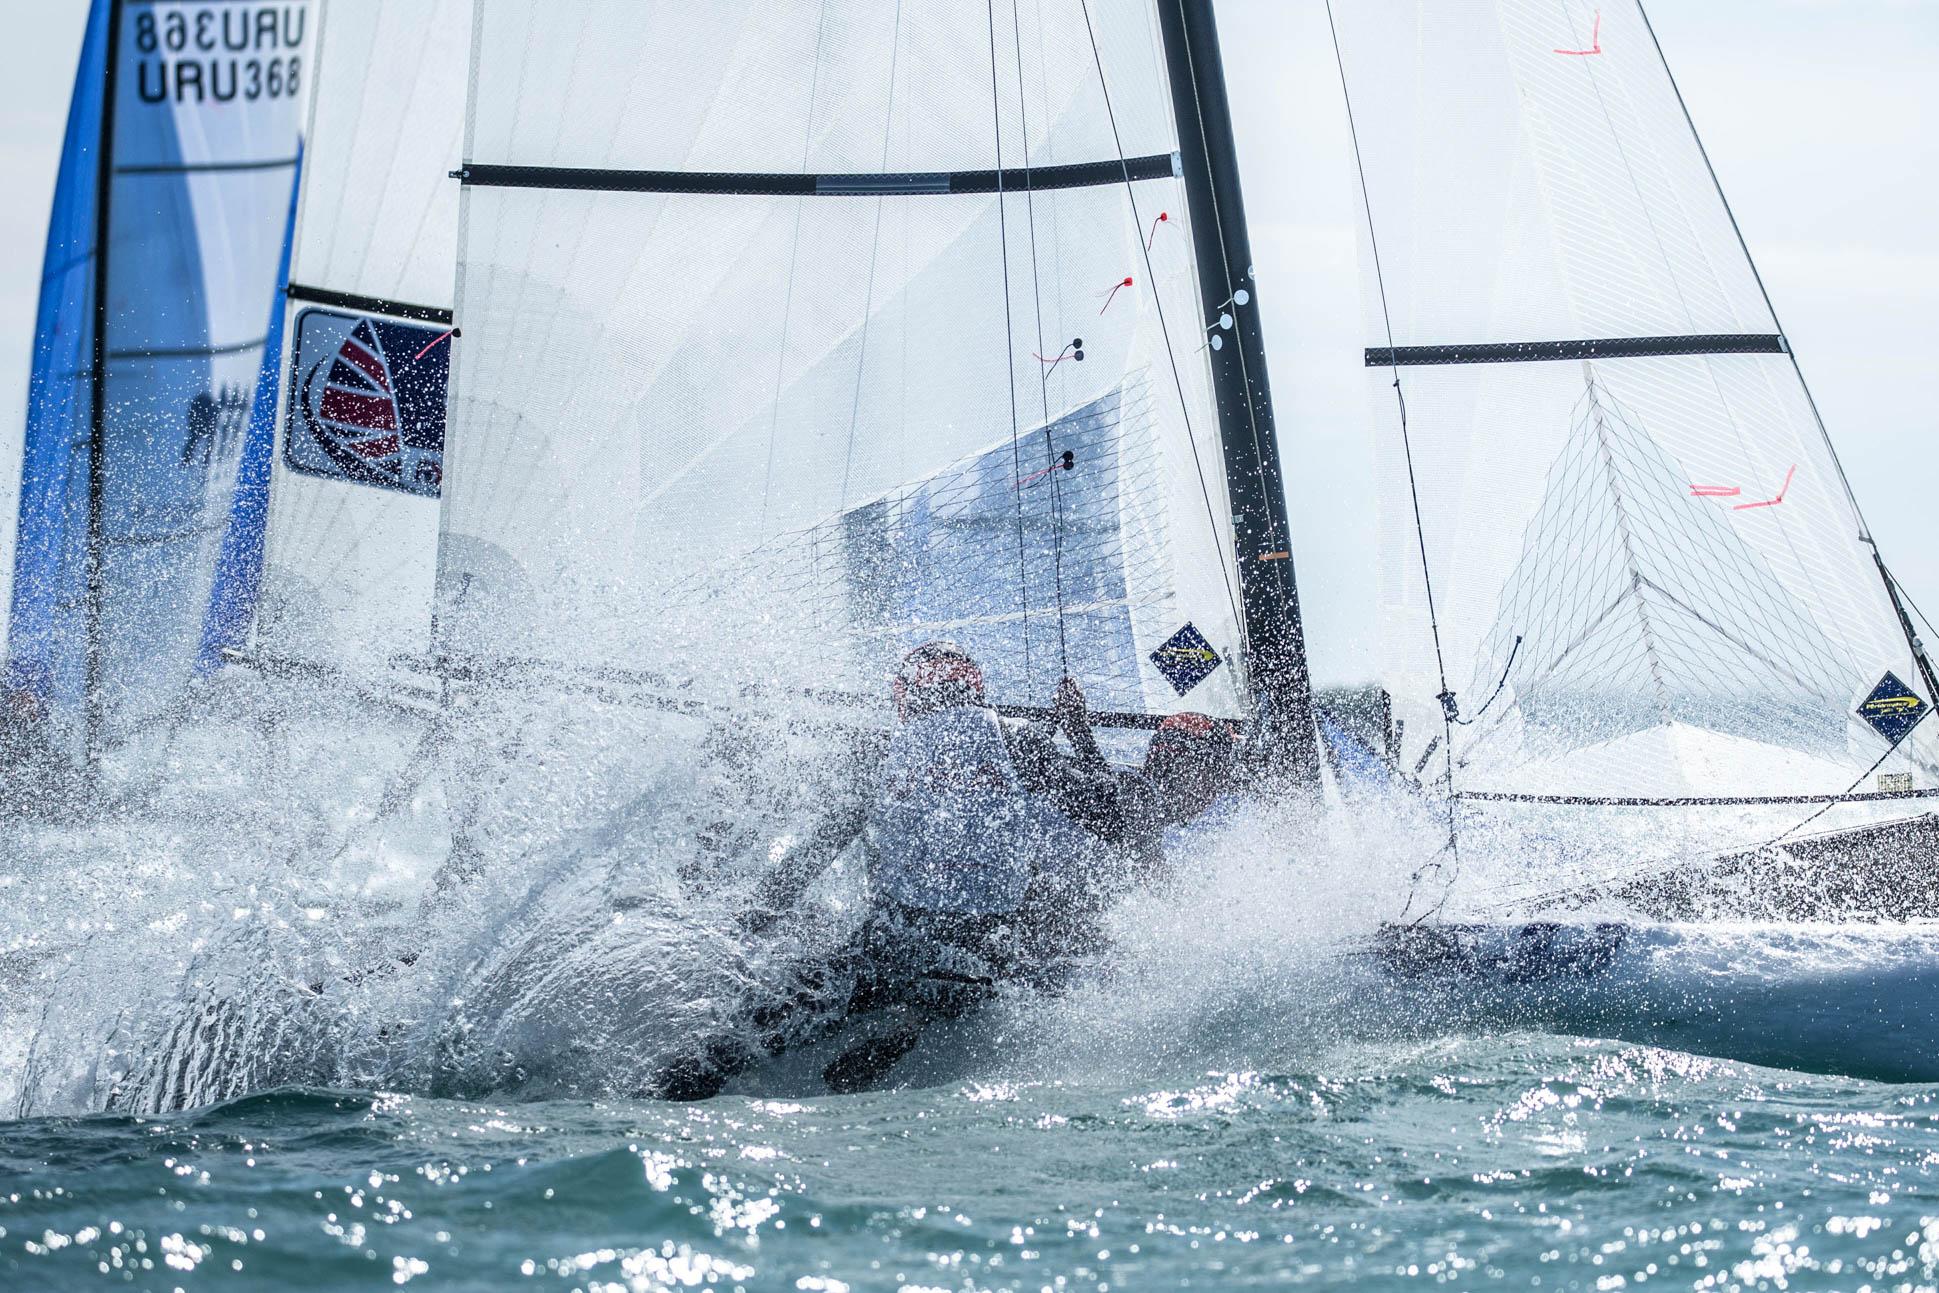 Championnat du Monde Nacra 17 VIDEO